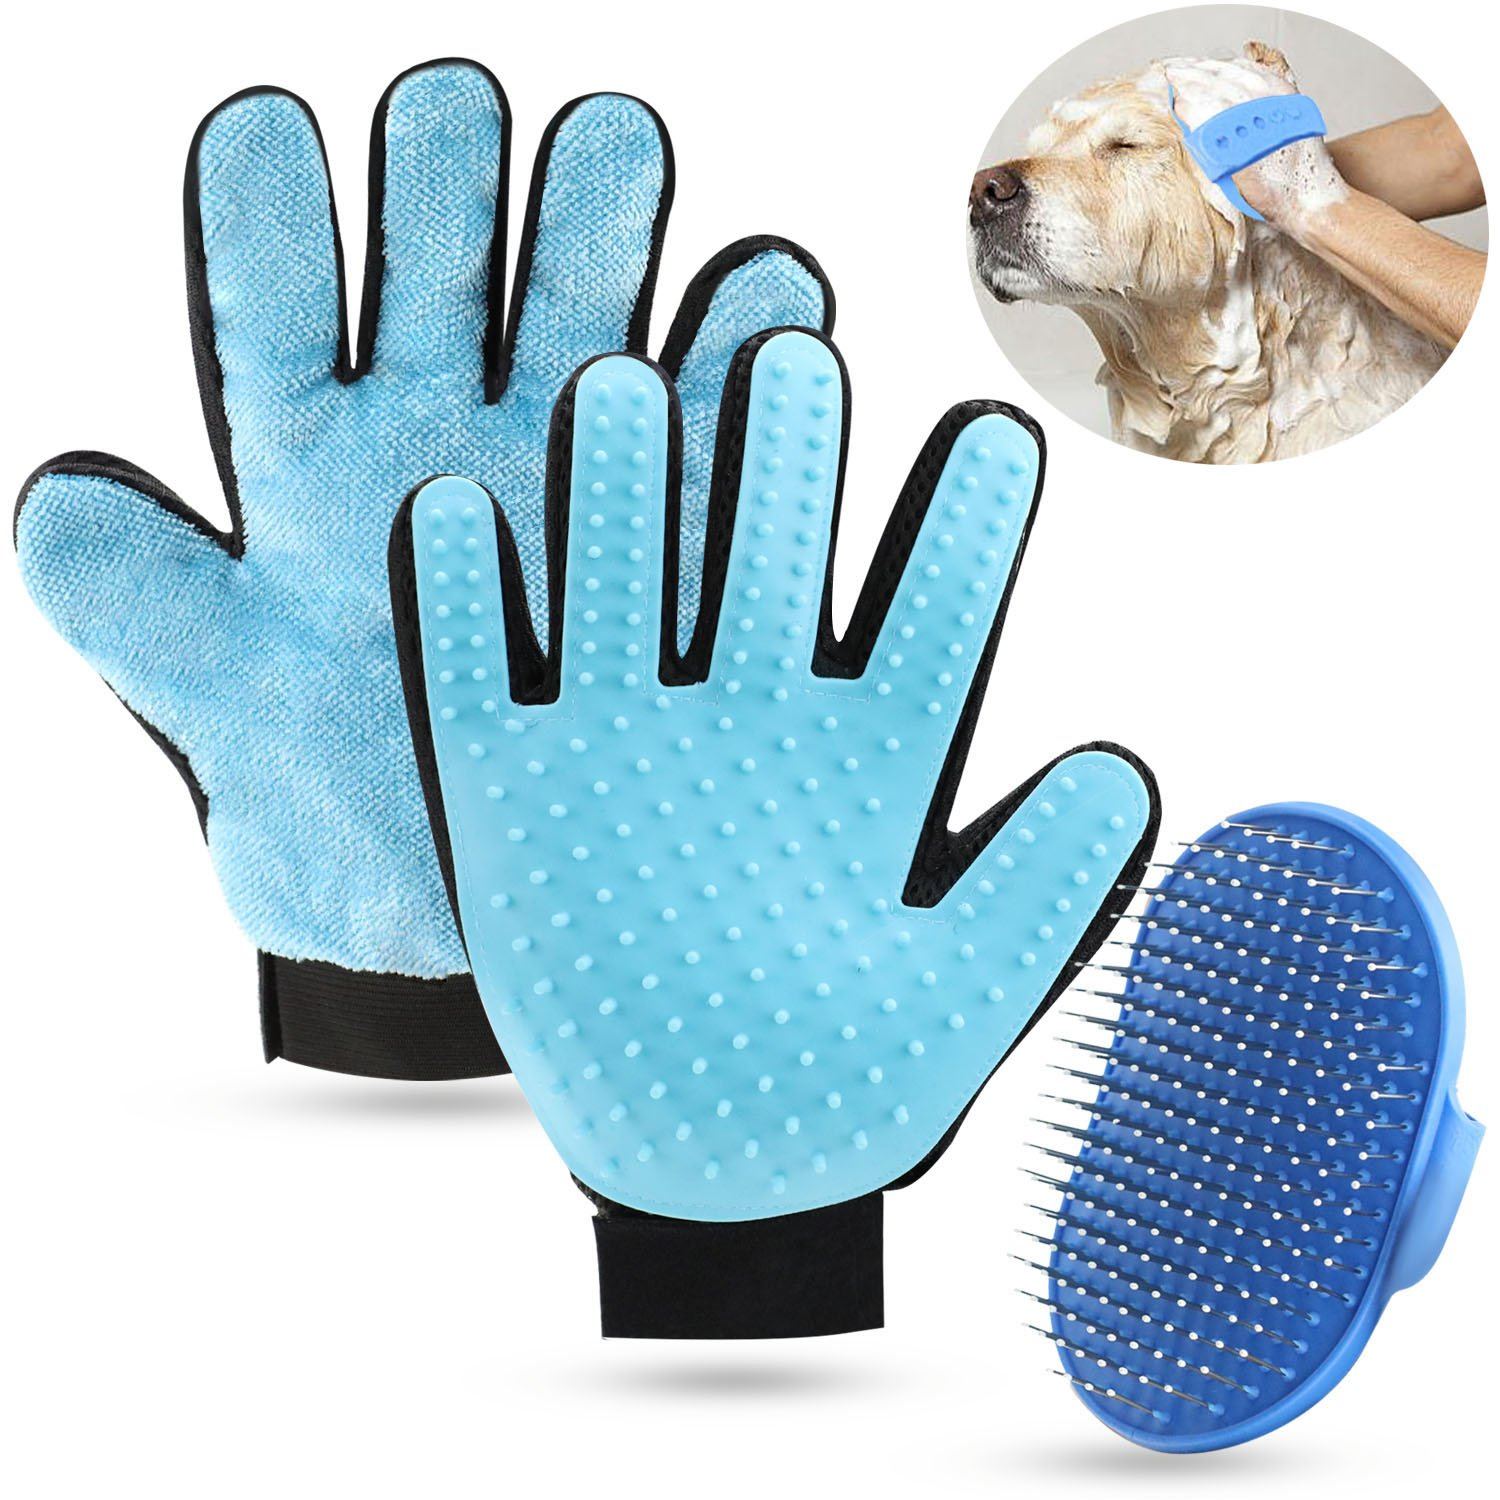 SGONE Pet Grooming Set, 2 in 1 Pet Grooming Glove with Pet Hair Remover Mitt for Furniture Small Slicker Brush for Dogs Cats - Long & Short Fur (Right Hand, Blue)